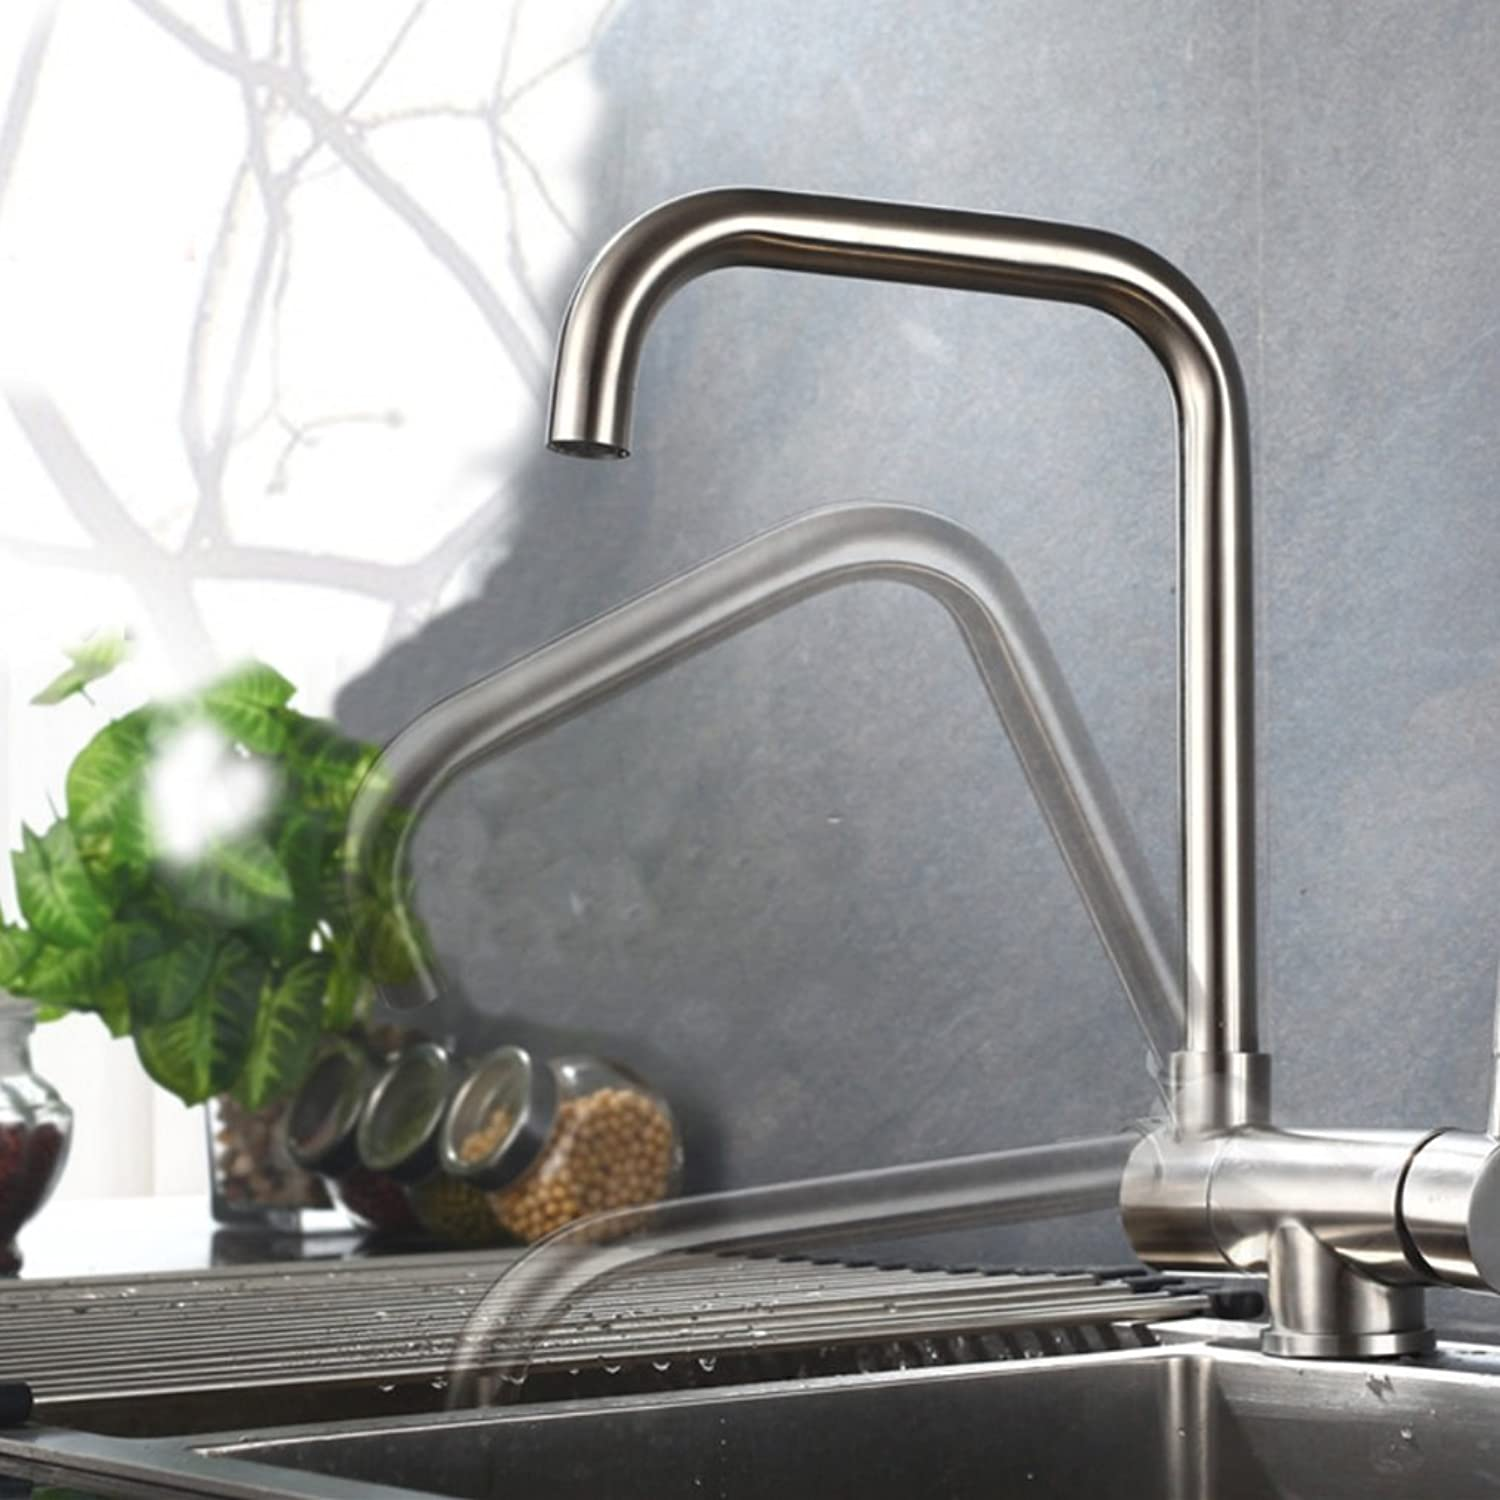 GJE Stainless Steel Hot And Cold Water Faucet Kitchen Sink Pull Water Faucet (color   3)